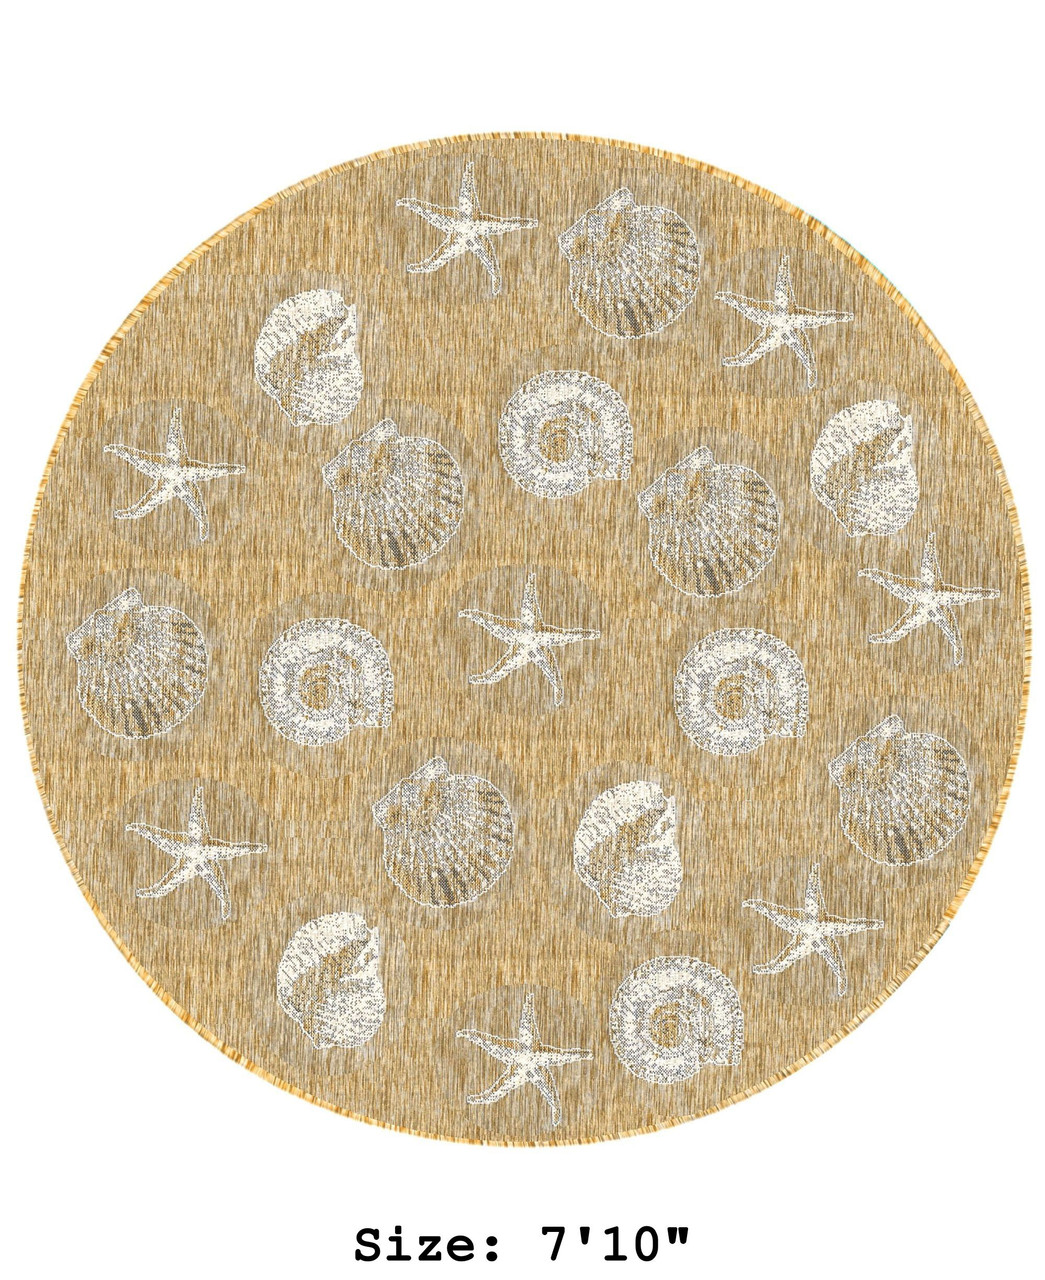 Sand Carmel Shells Indoor/Outdoor Rug -  Round